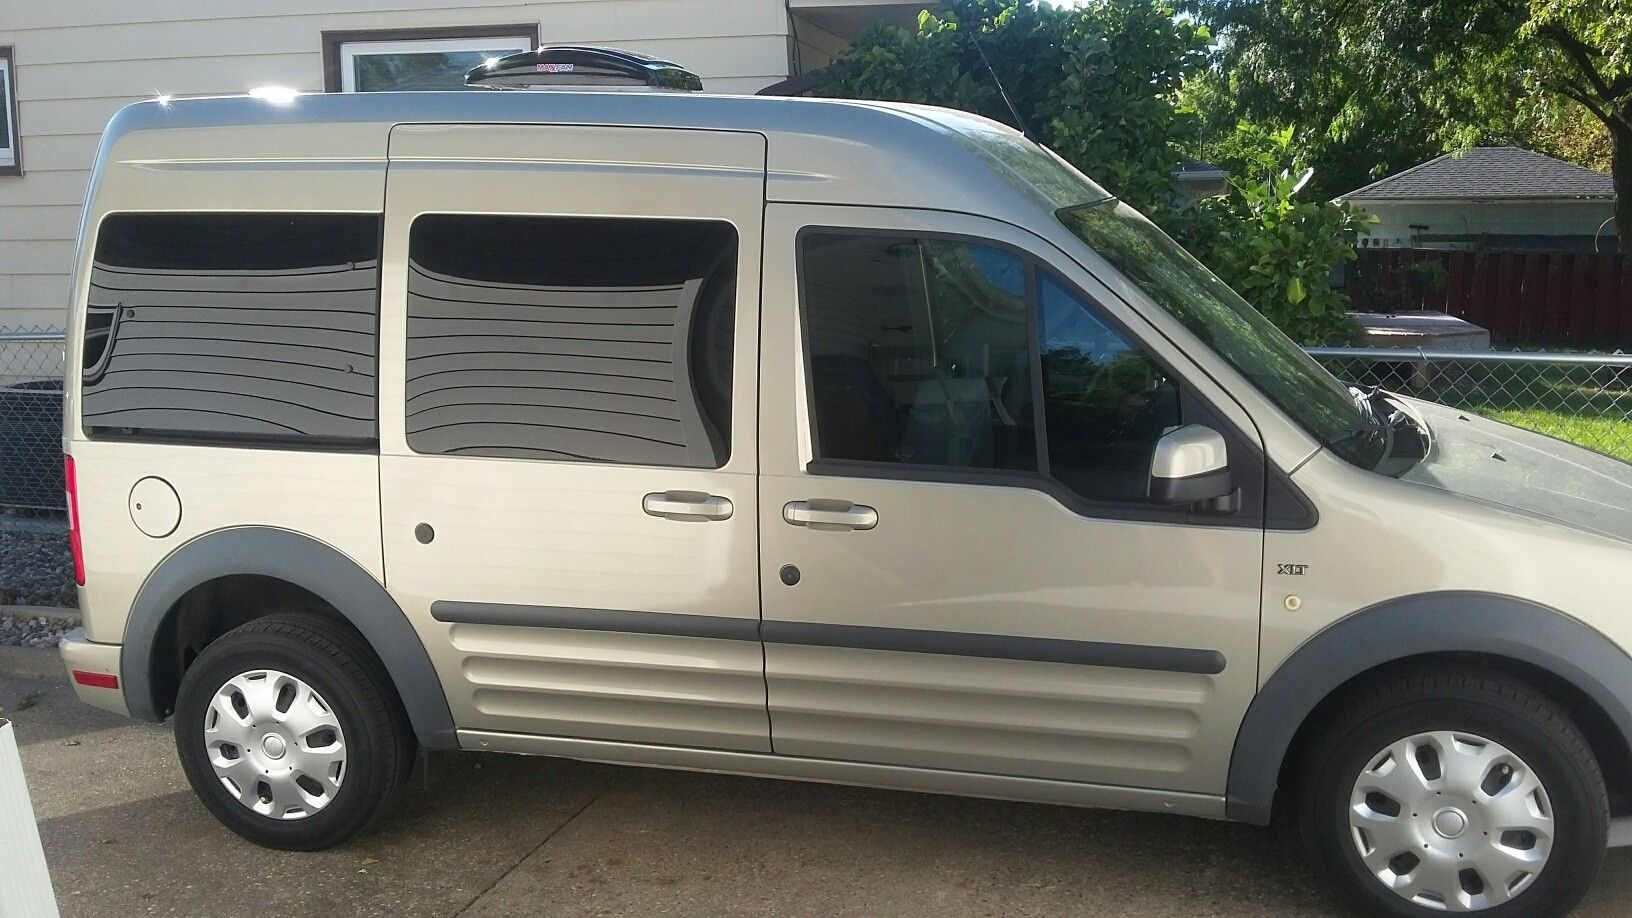 2013 Transit Connect Campervan Fuel Efficient Great Daily Driver